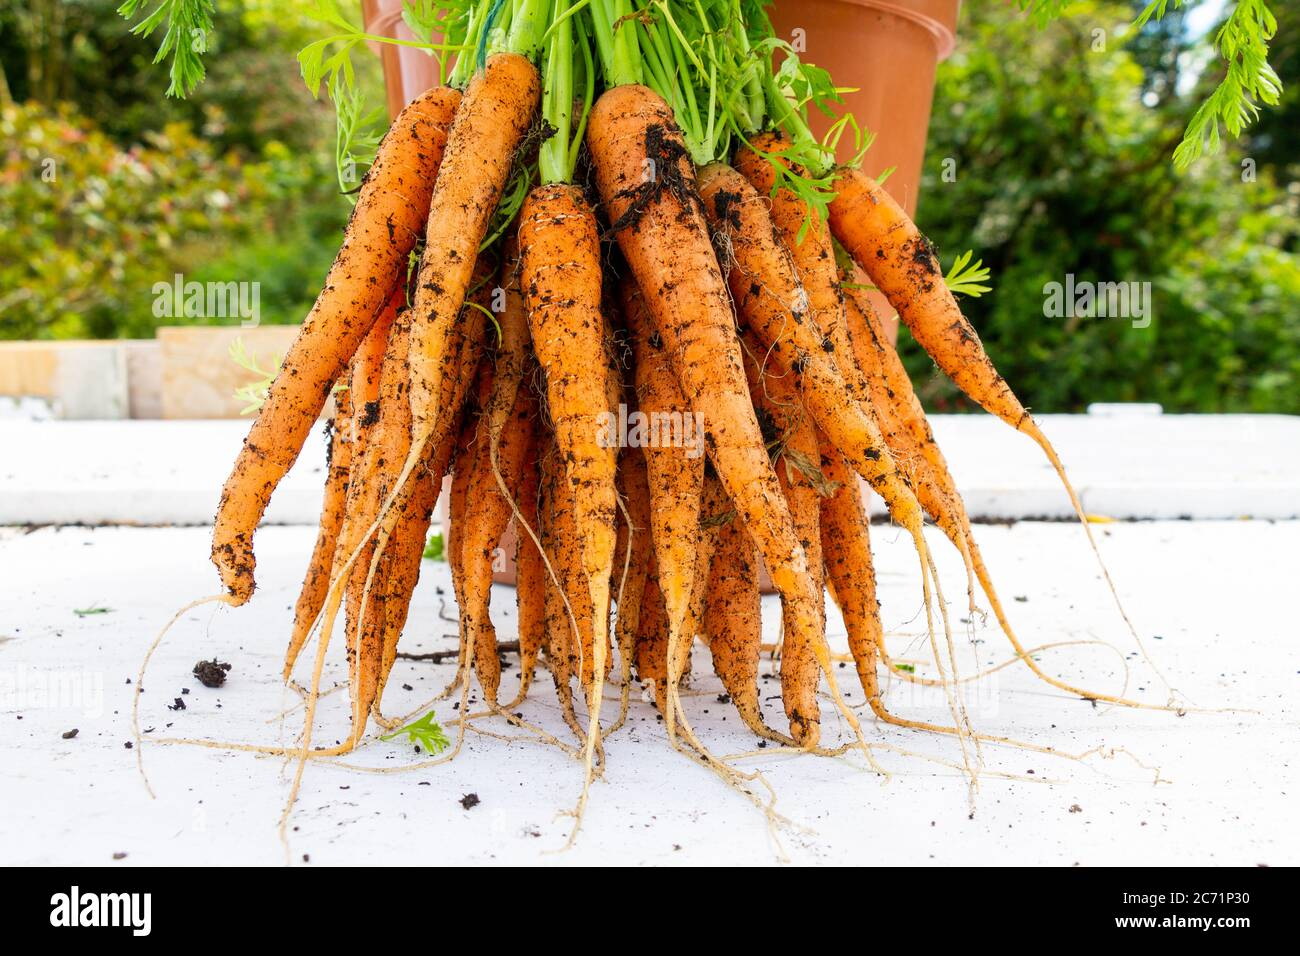 bunch-of-home-grown-carrots-grown-in-a-10-inch-pot-2C71P30.jpg